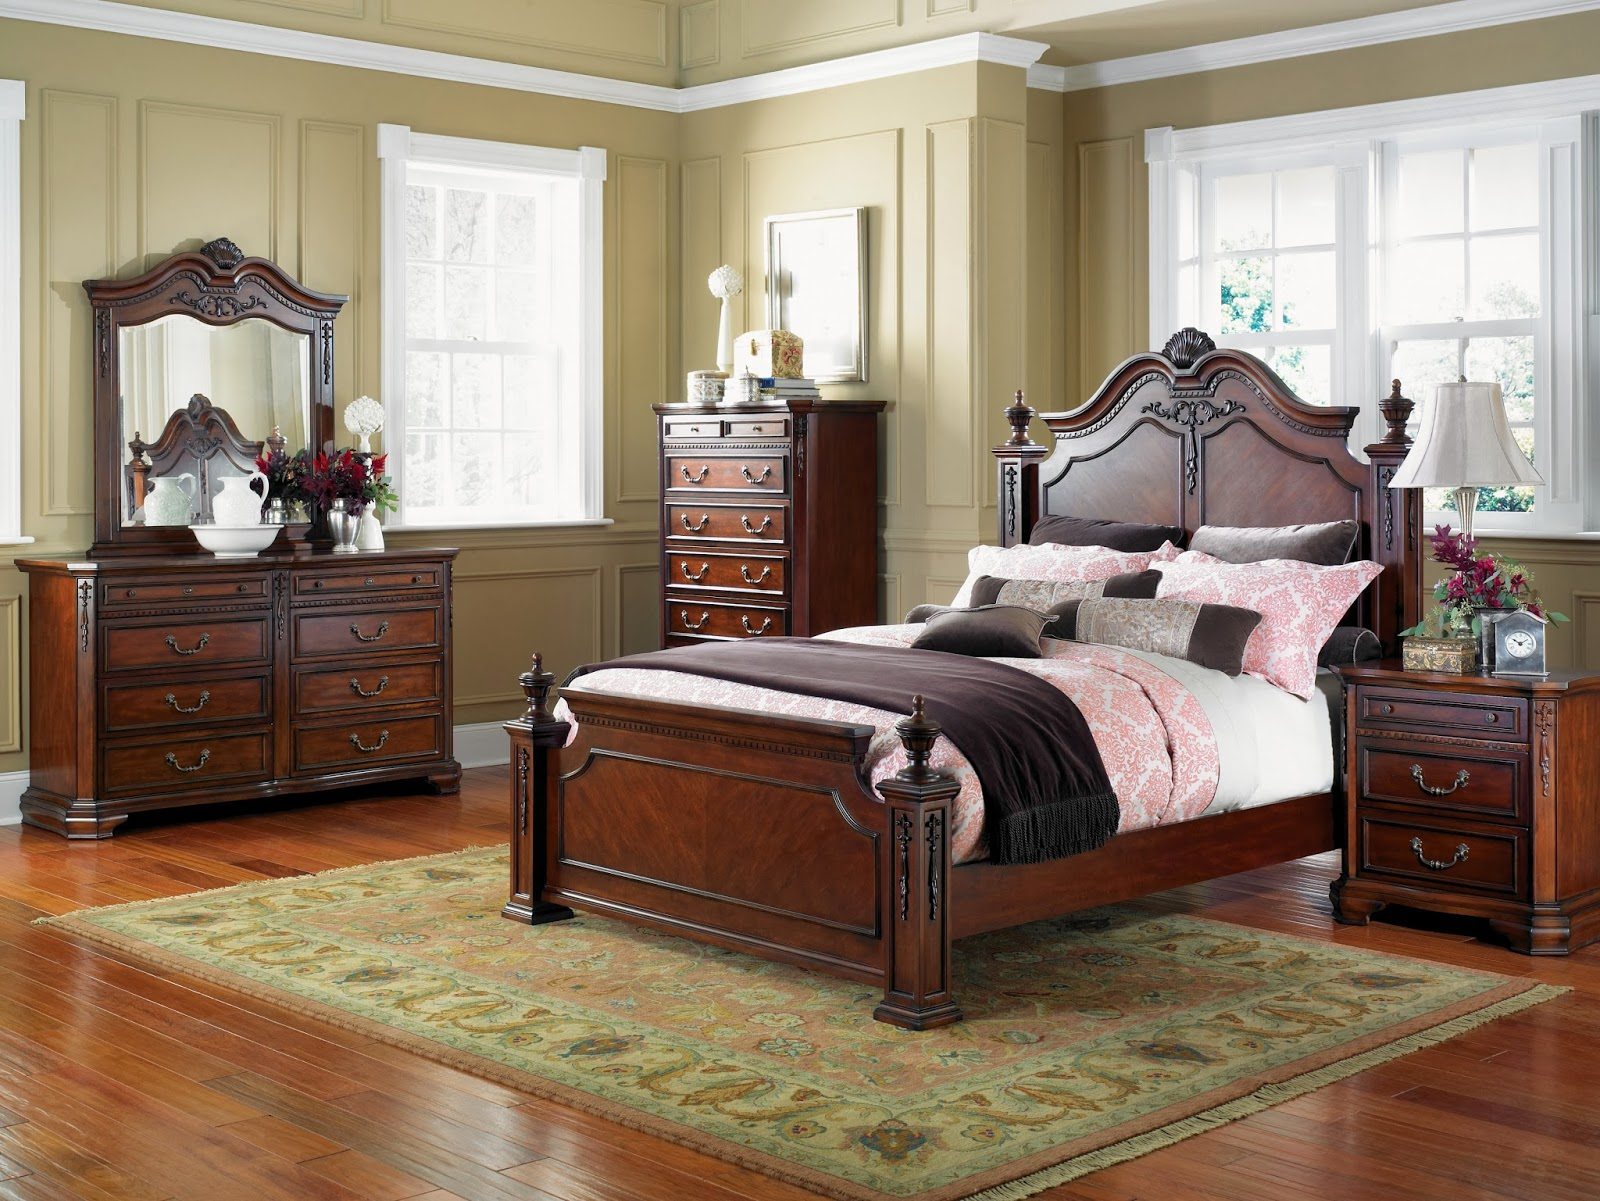 furniture buy online india